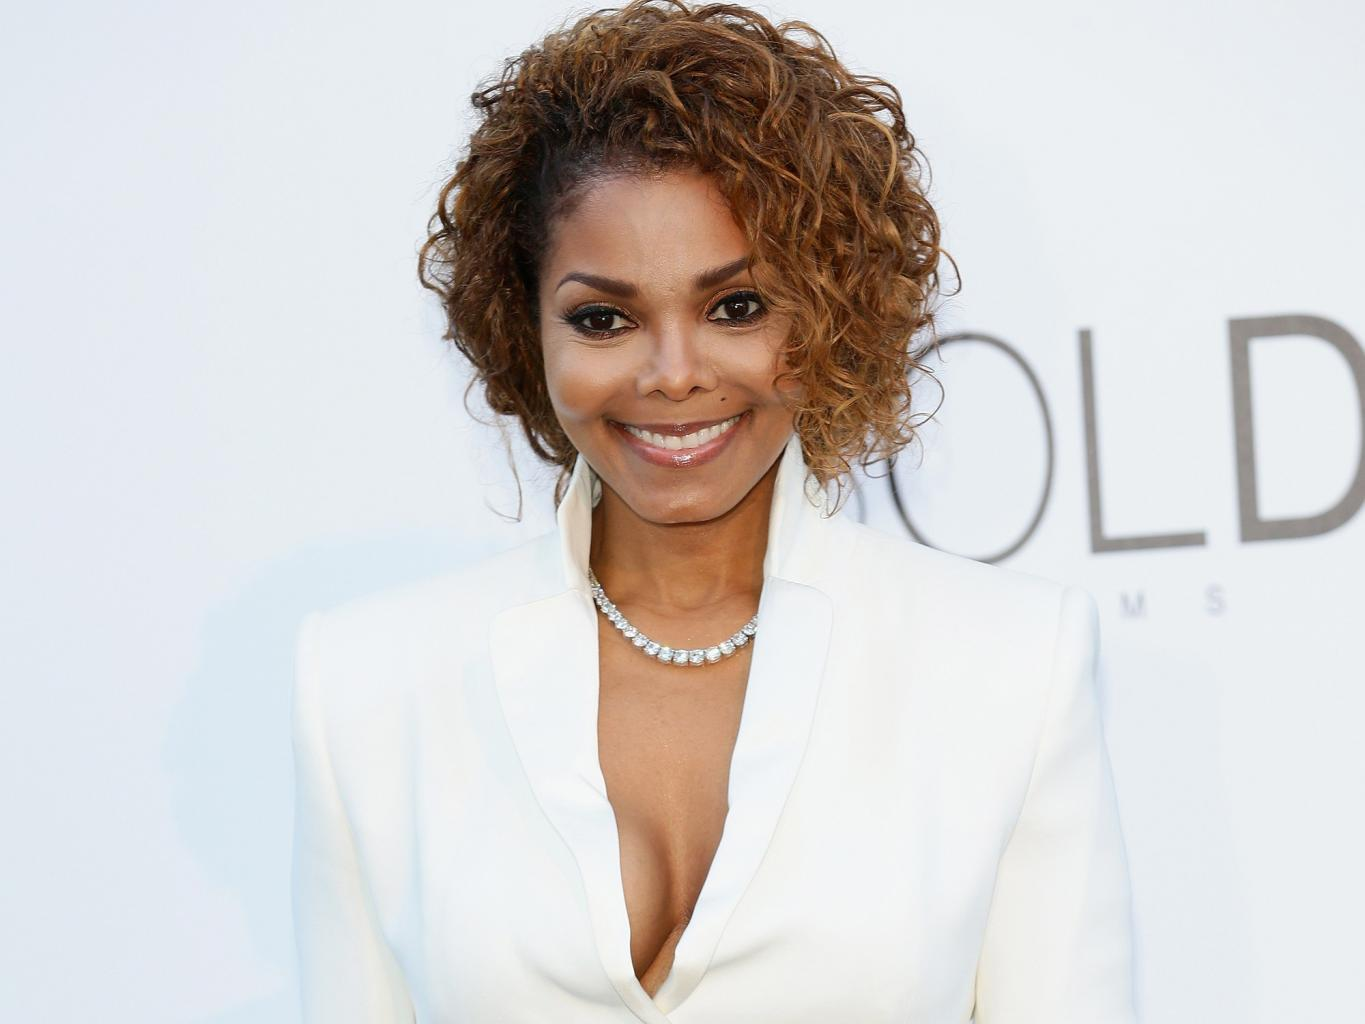 Rock and Roll Hall of Fame 2017: Janet Jackson, Tupac Shakur Among Nominees